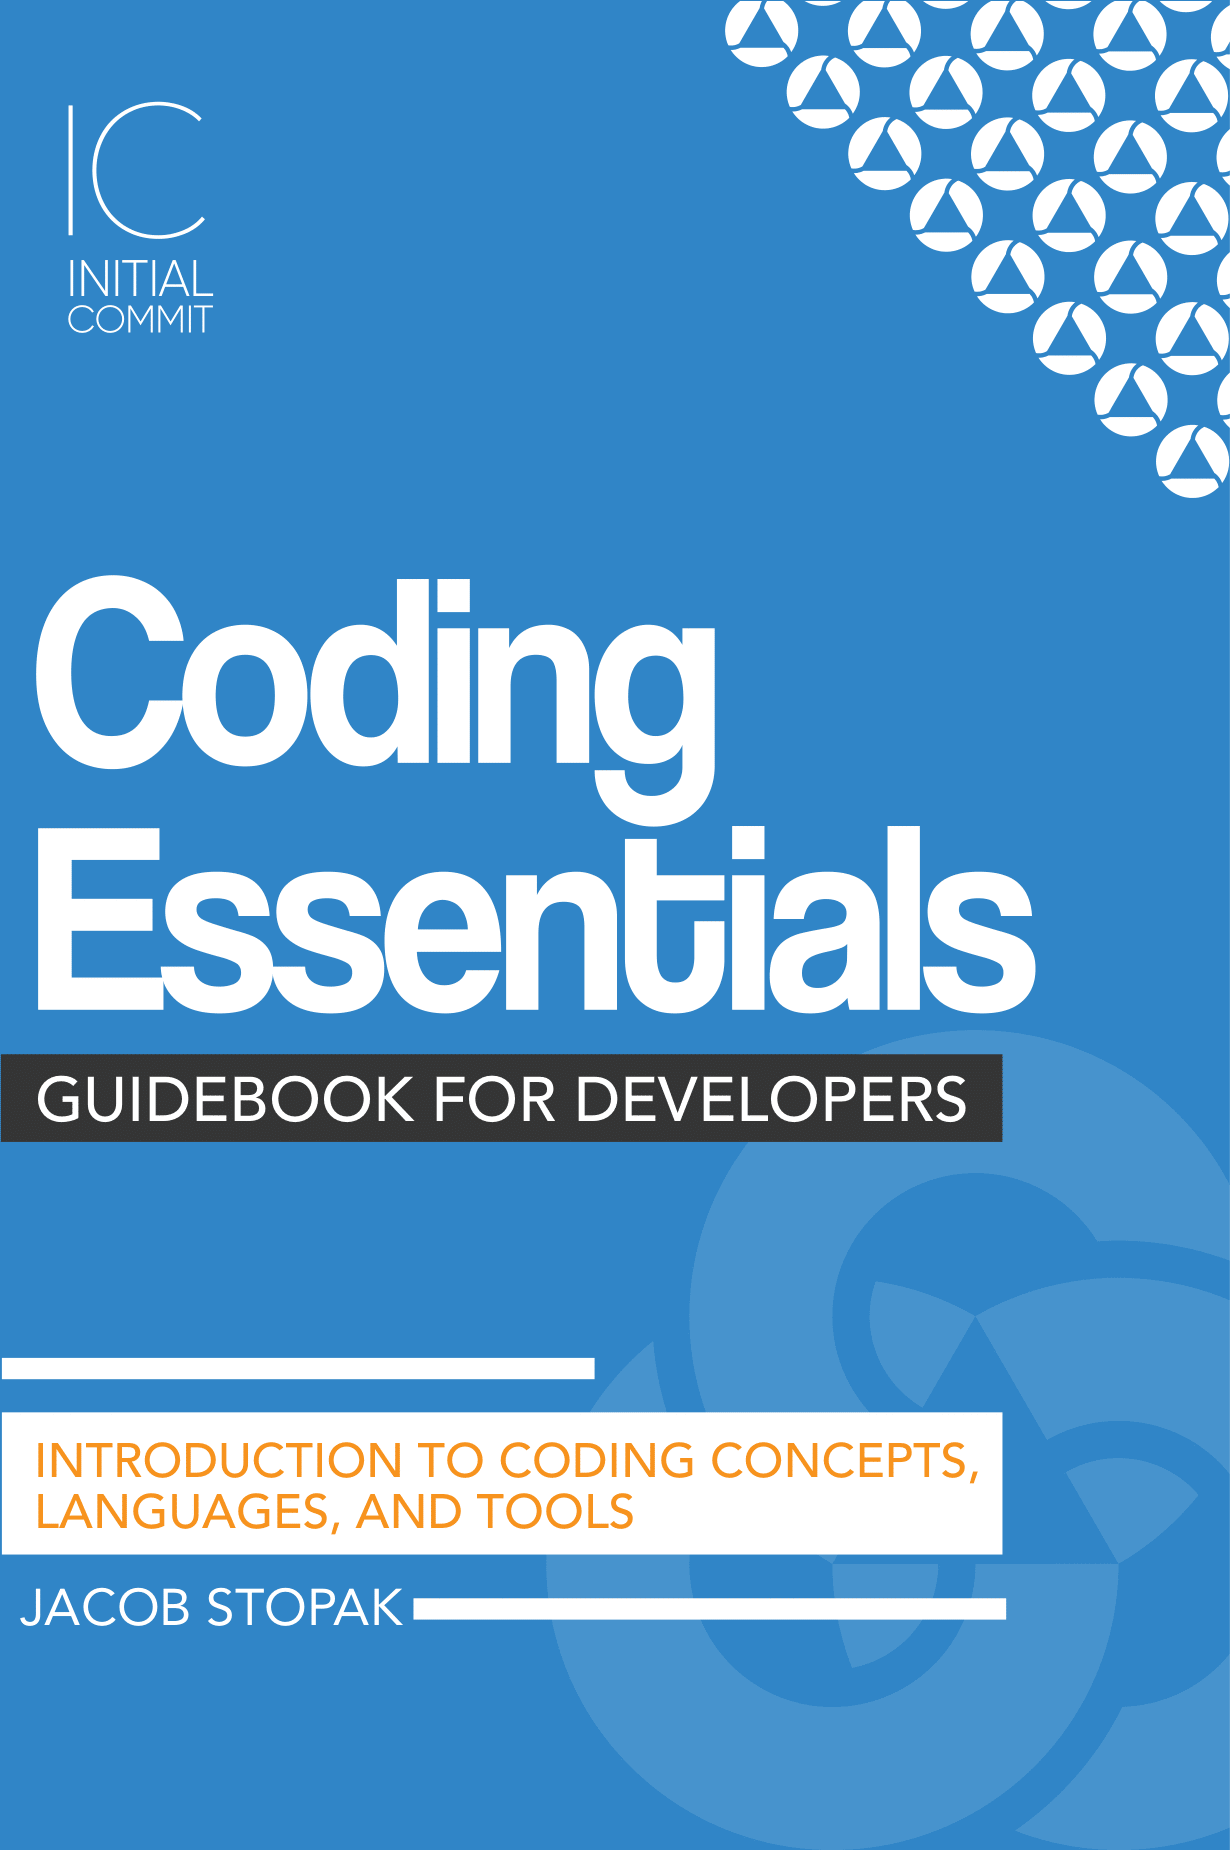 Image of the cover of the Coding Essentials Guidebook for Developers